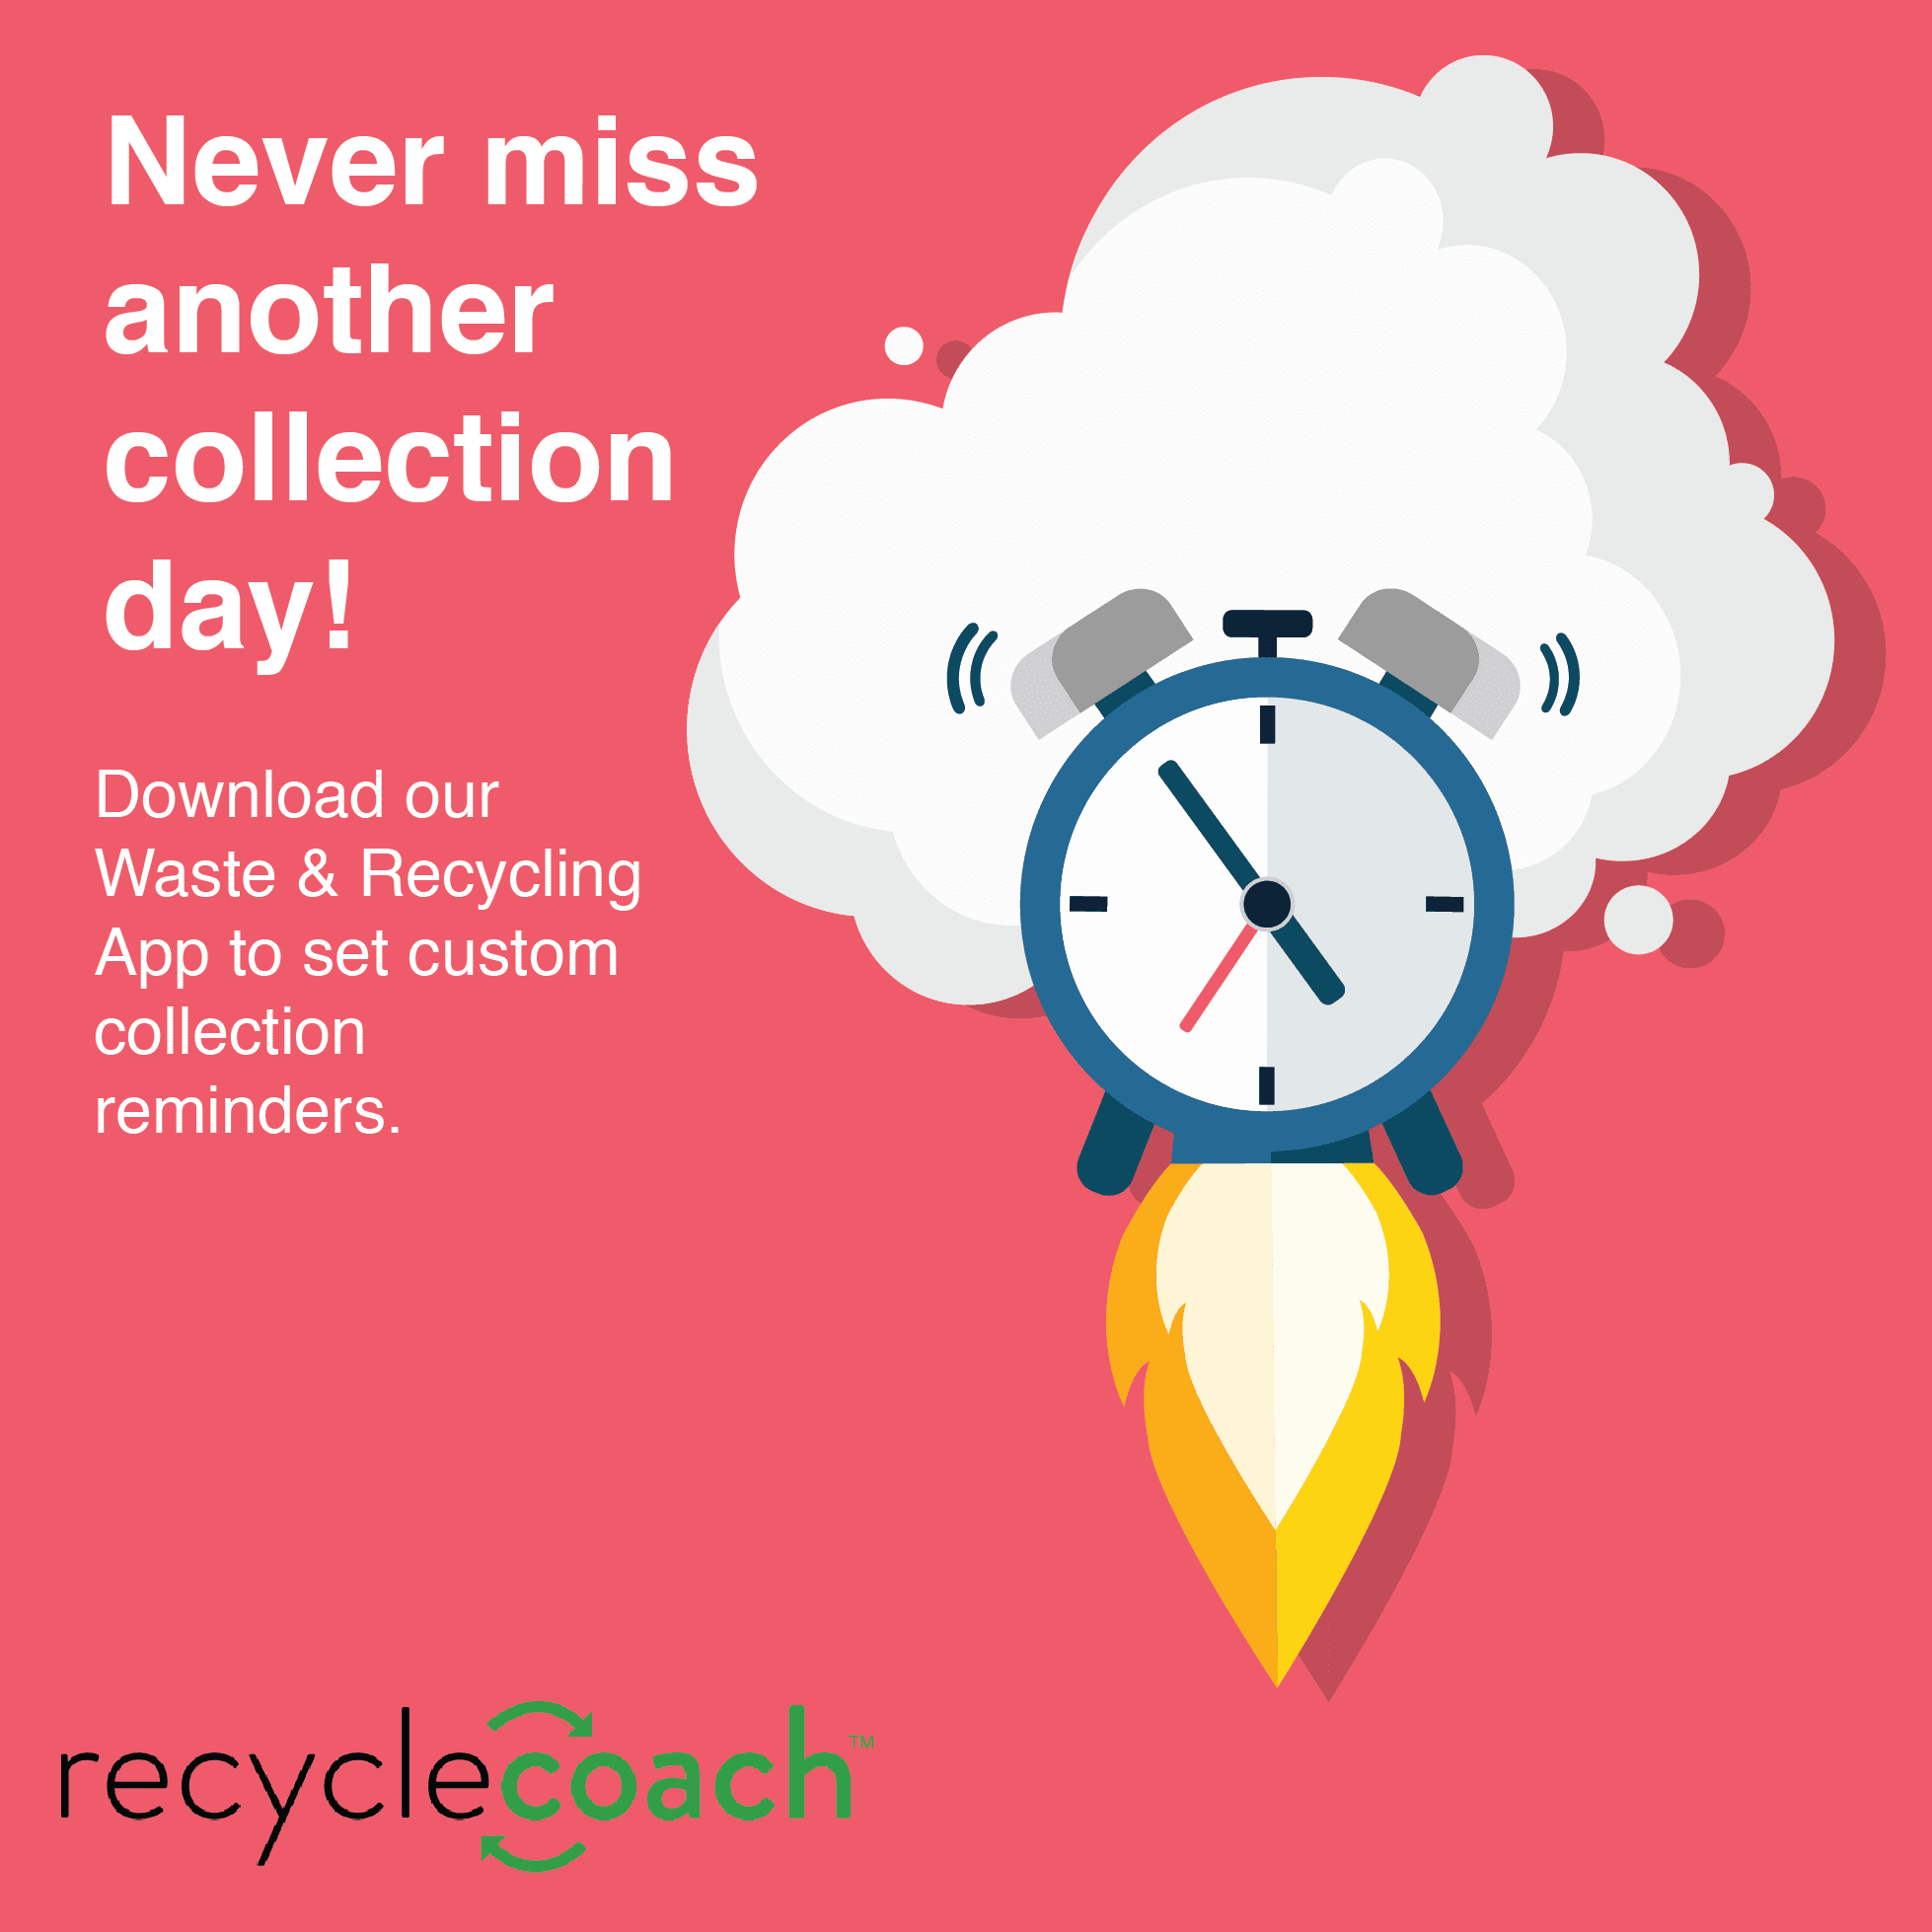 Never miss another collection day download our waste and recycling app